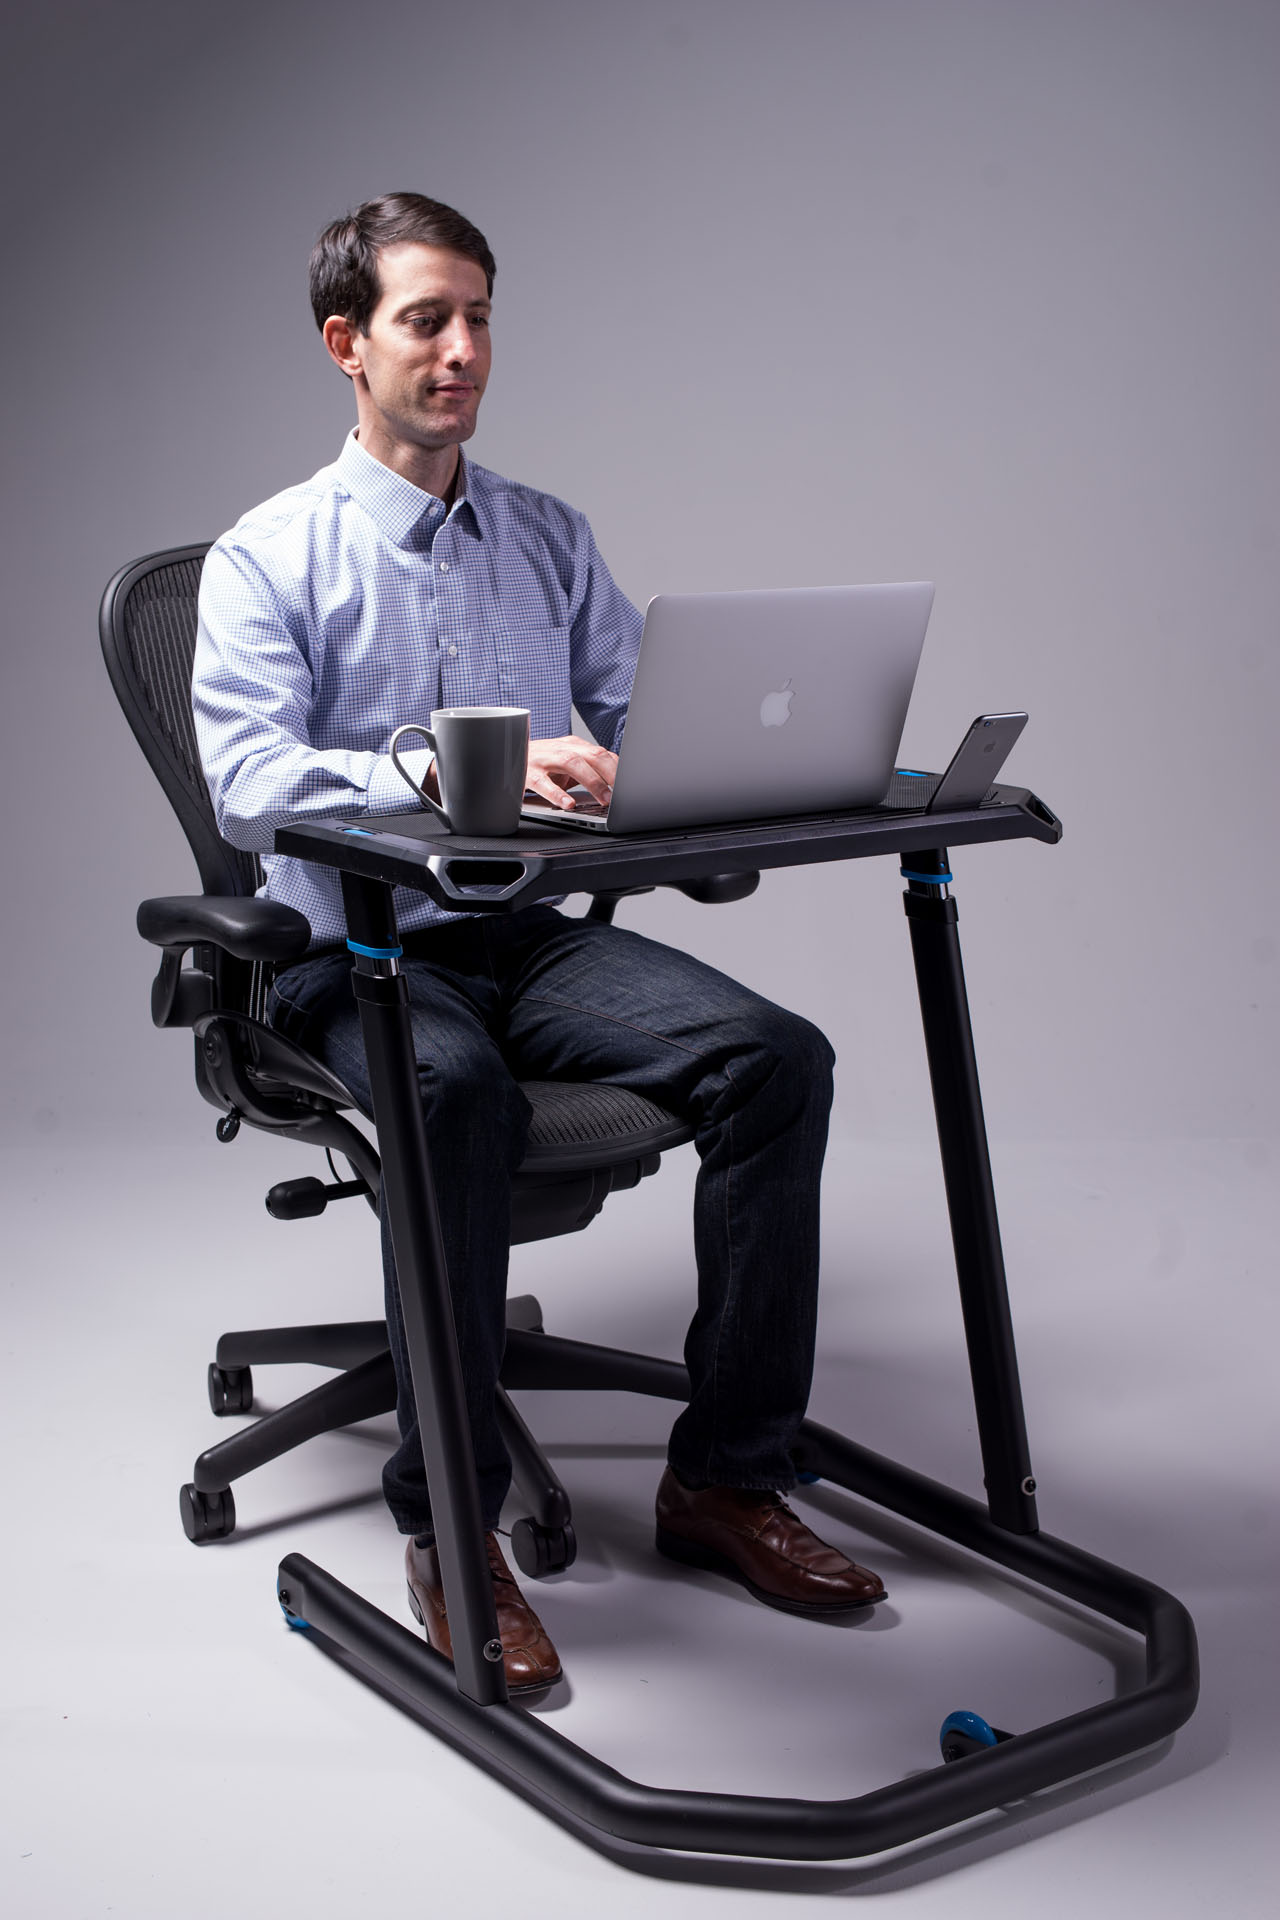 KICKR Indoor Cycling Desk-Picture-23